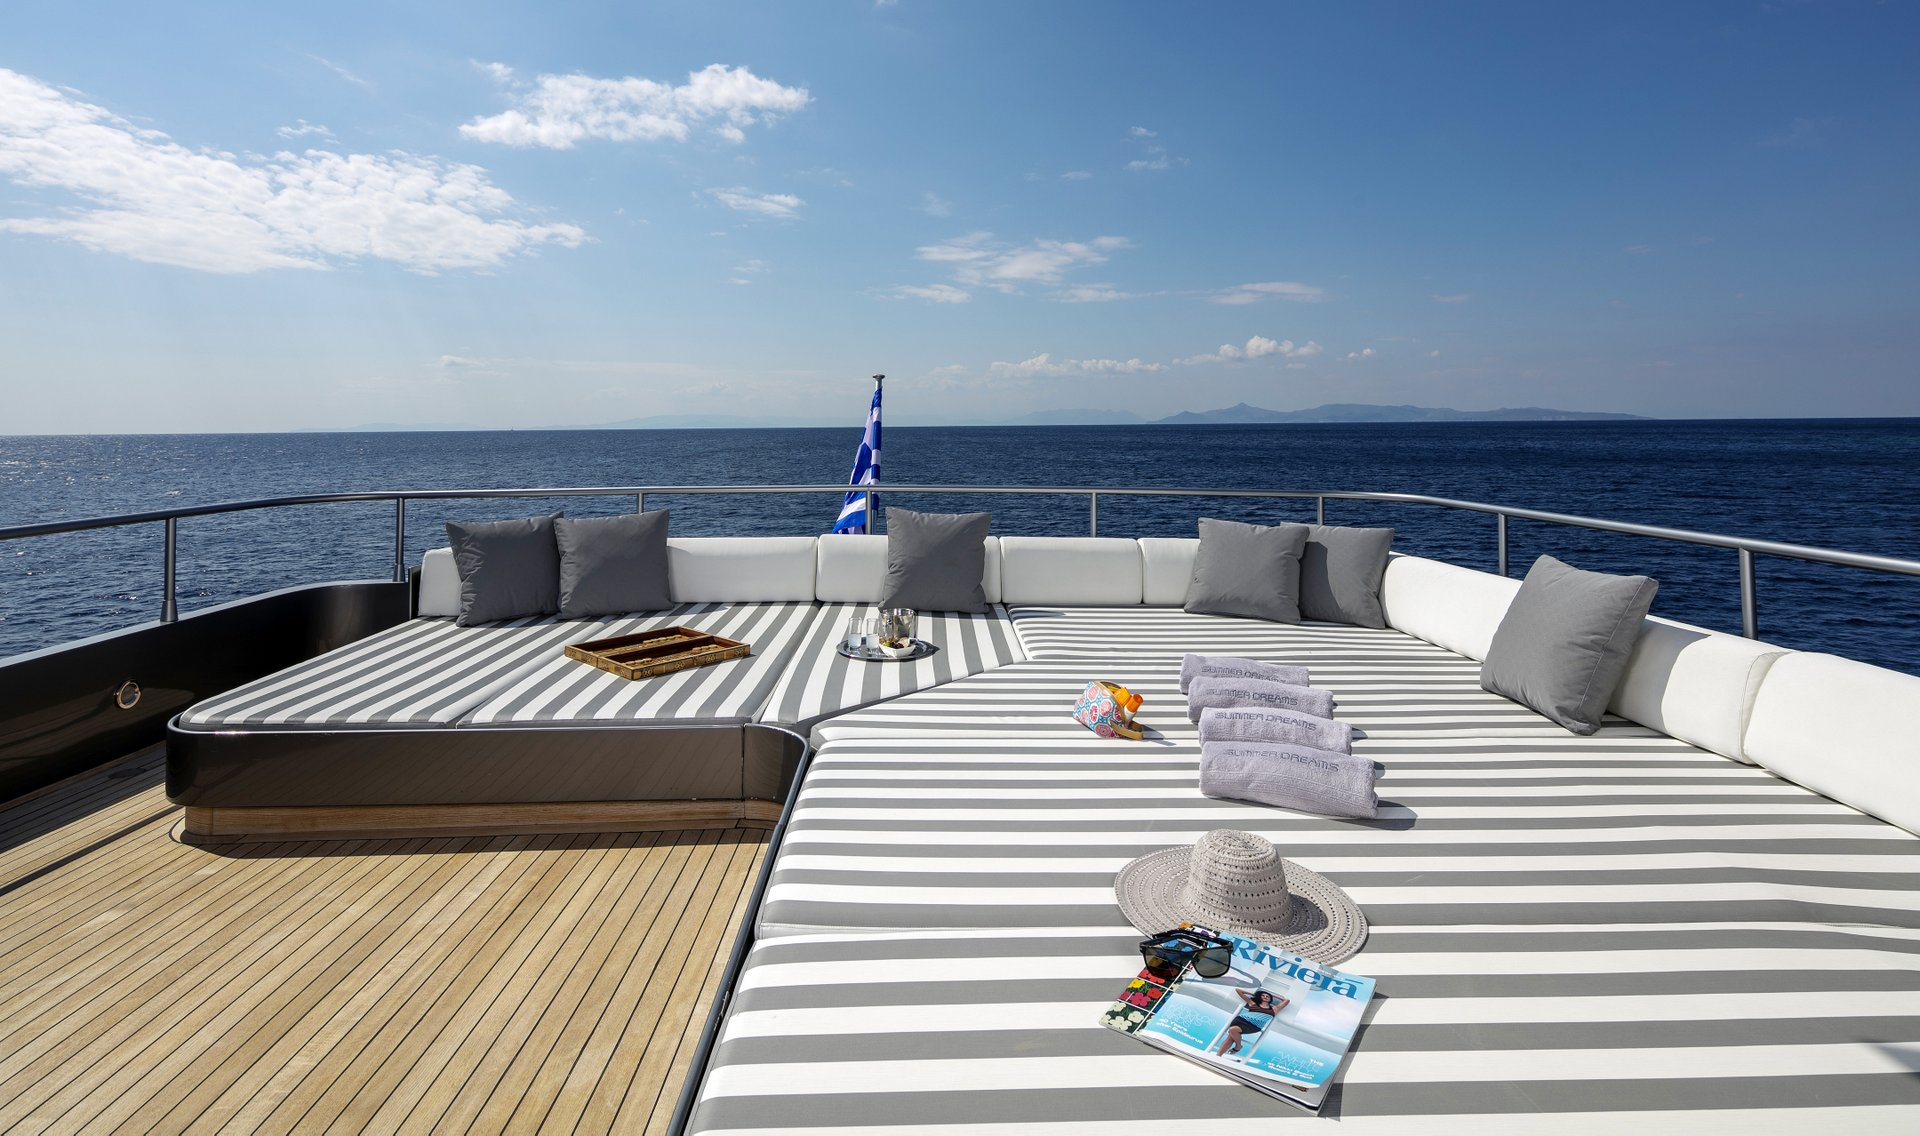 M/Y SUMMER DREAMS yacht for charter deck lounging area